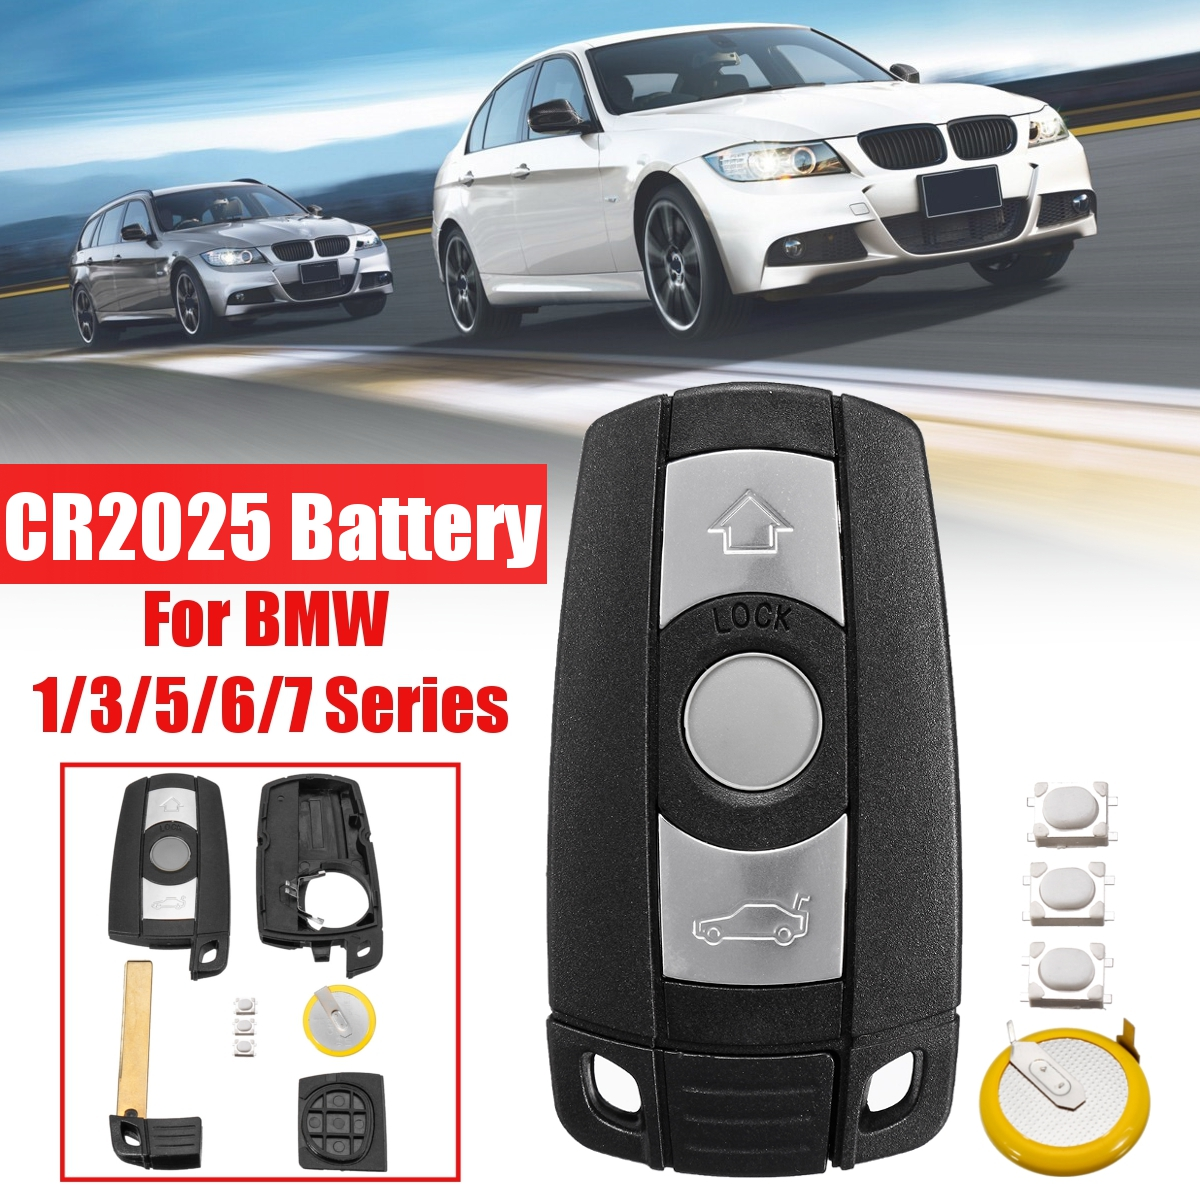 With Blade Battery Remote 3 Button Car Key Shell Case Styling Cover Trim For BMW 1/3/5/6/7 Series E90 E92 E93 E60 E61 X1 X5 X6With Blade Battery Remote 3 Button Car Key Shell Case Styling Cover Trim For BMW 1/3/5/6/7 Series E90 E92 E93 E60 E61 X1 X5 X6